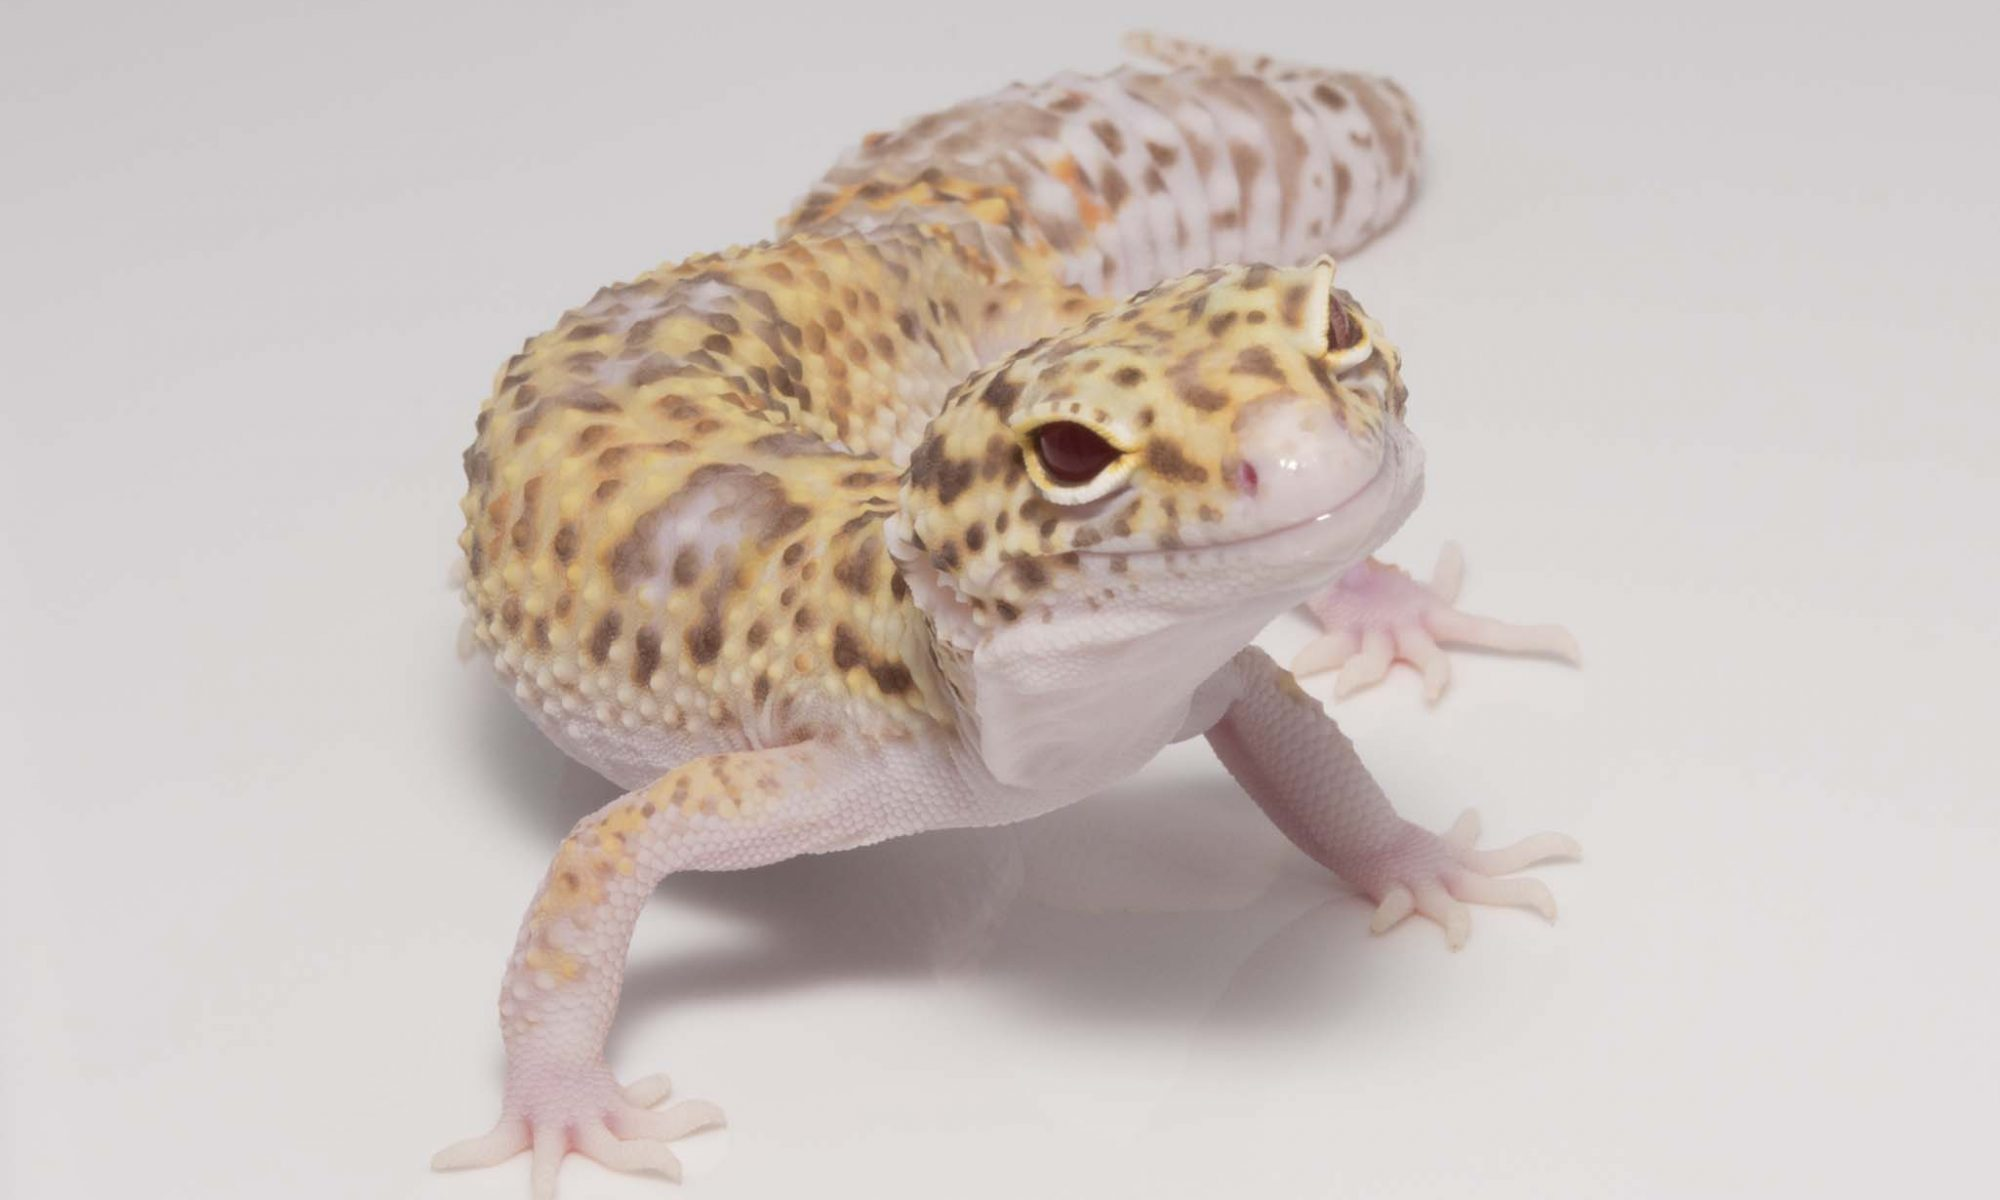 leopard geckos for sale onlinegeckos quality breeder